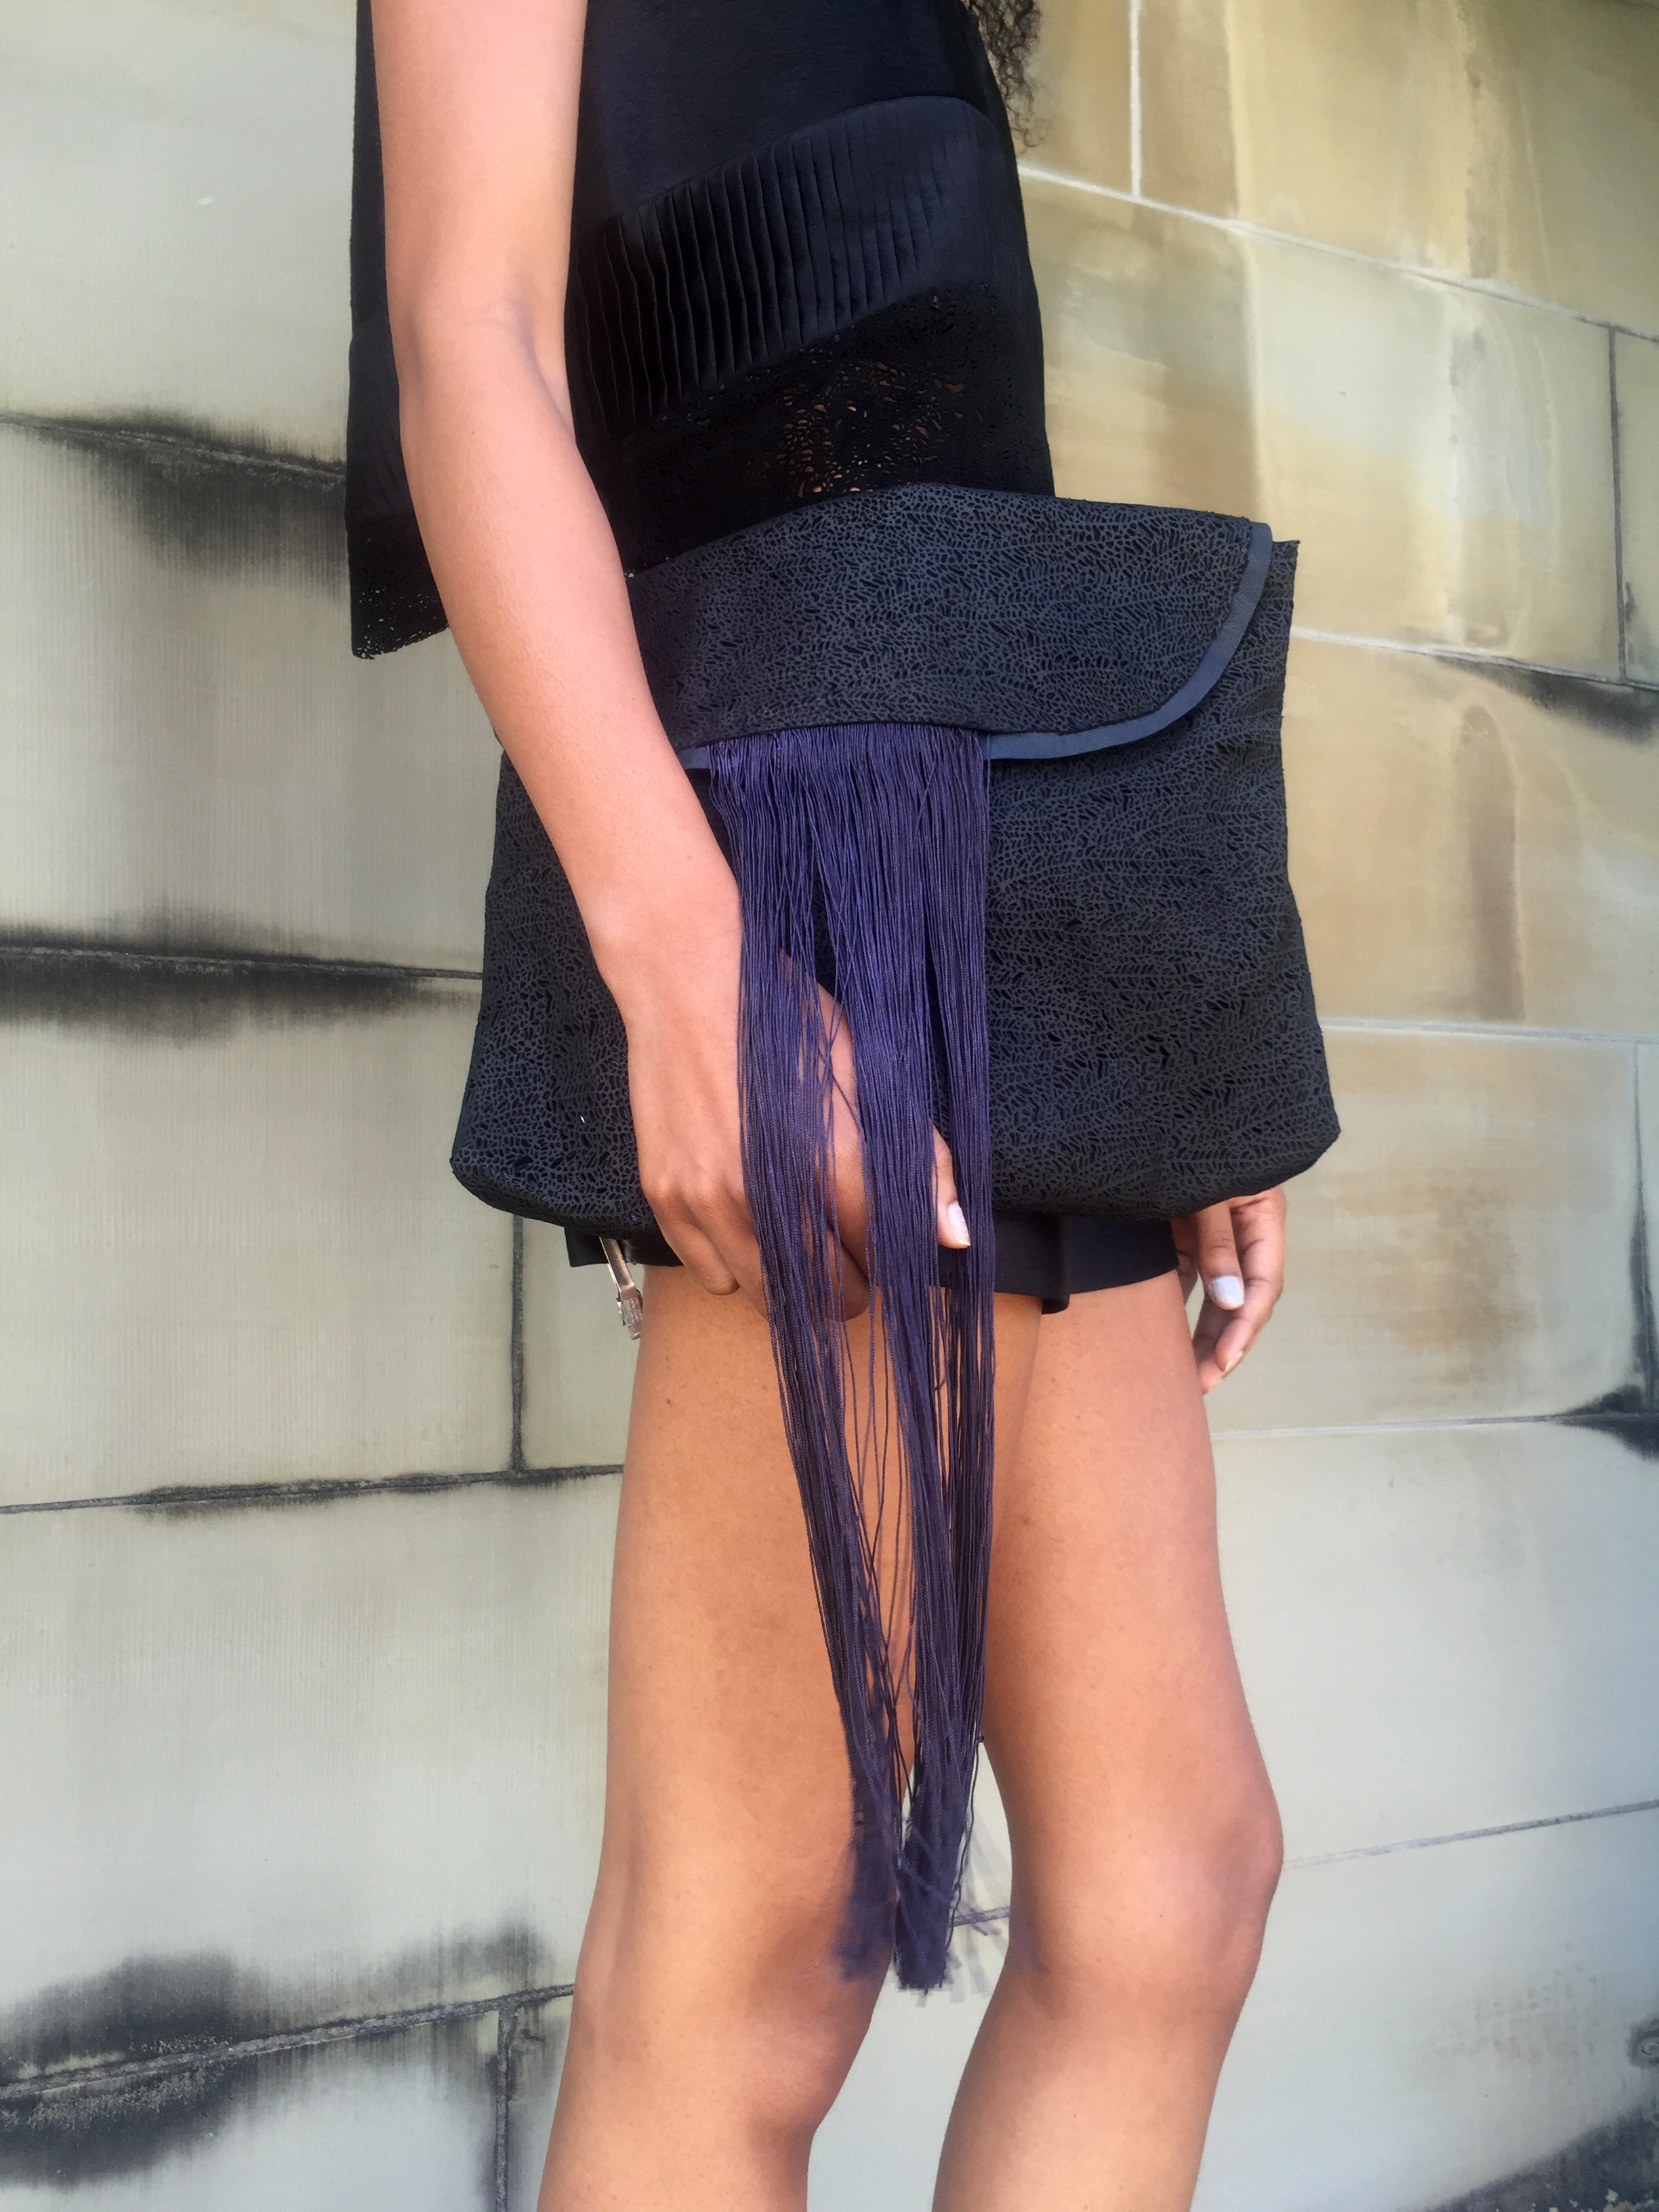 Pony Hair, Crystal-Pleat Silk, & Laser-Cut Leather Crop Top + Laser-Cut Leather & Fringe Clutch